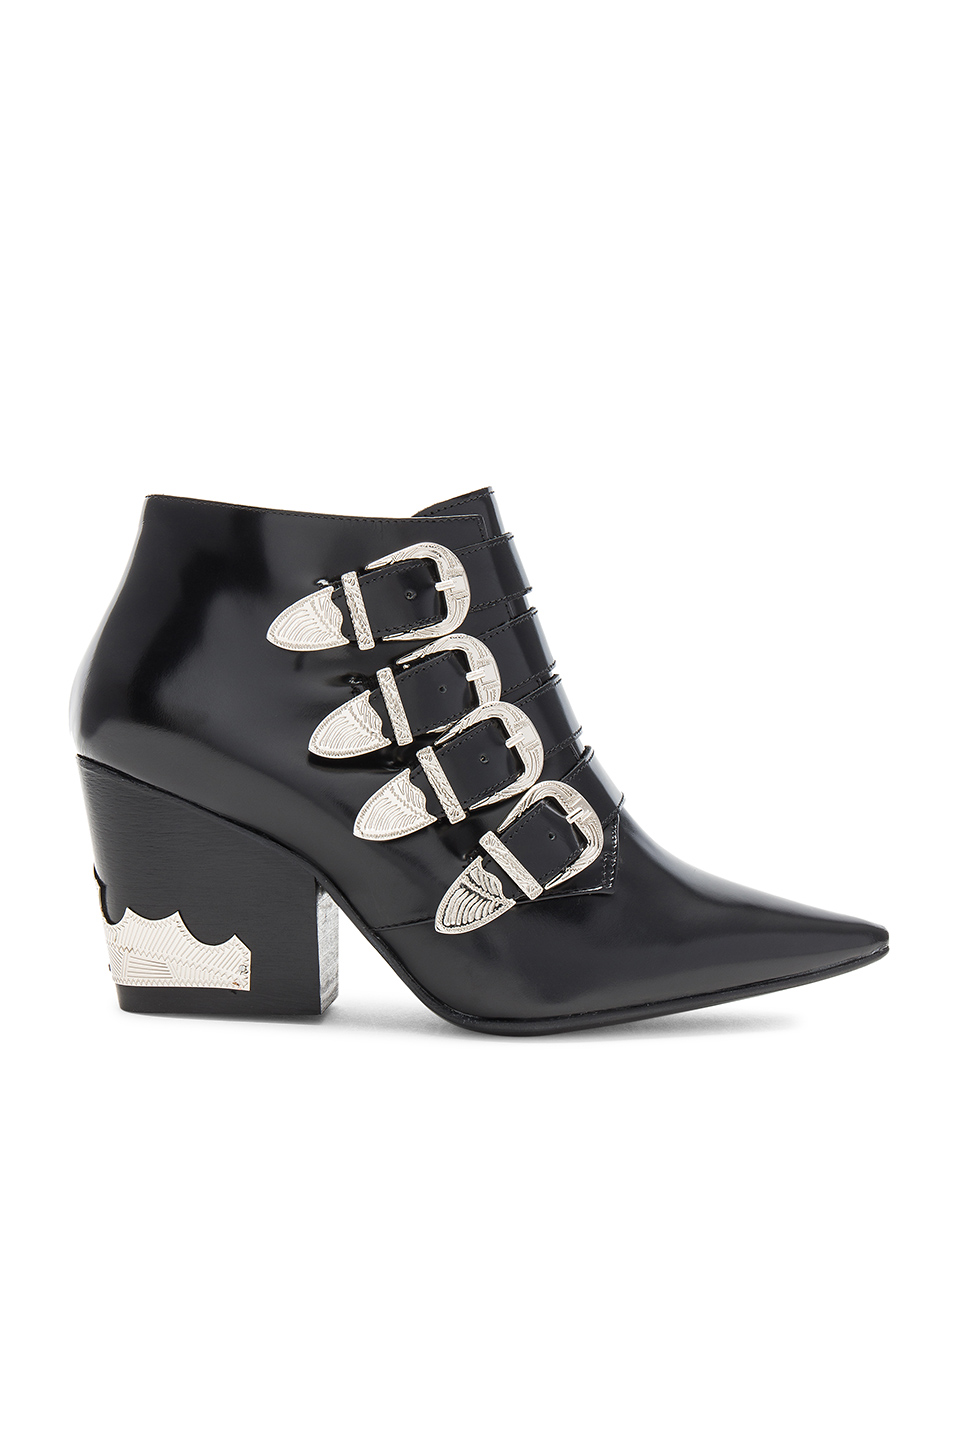 TOGA PULLA Buckle Heeled Bootie in Black Polido